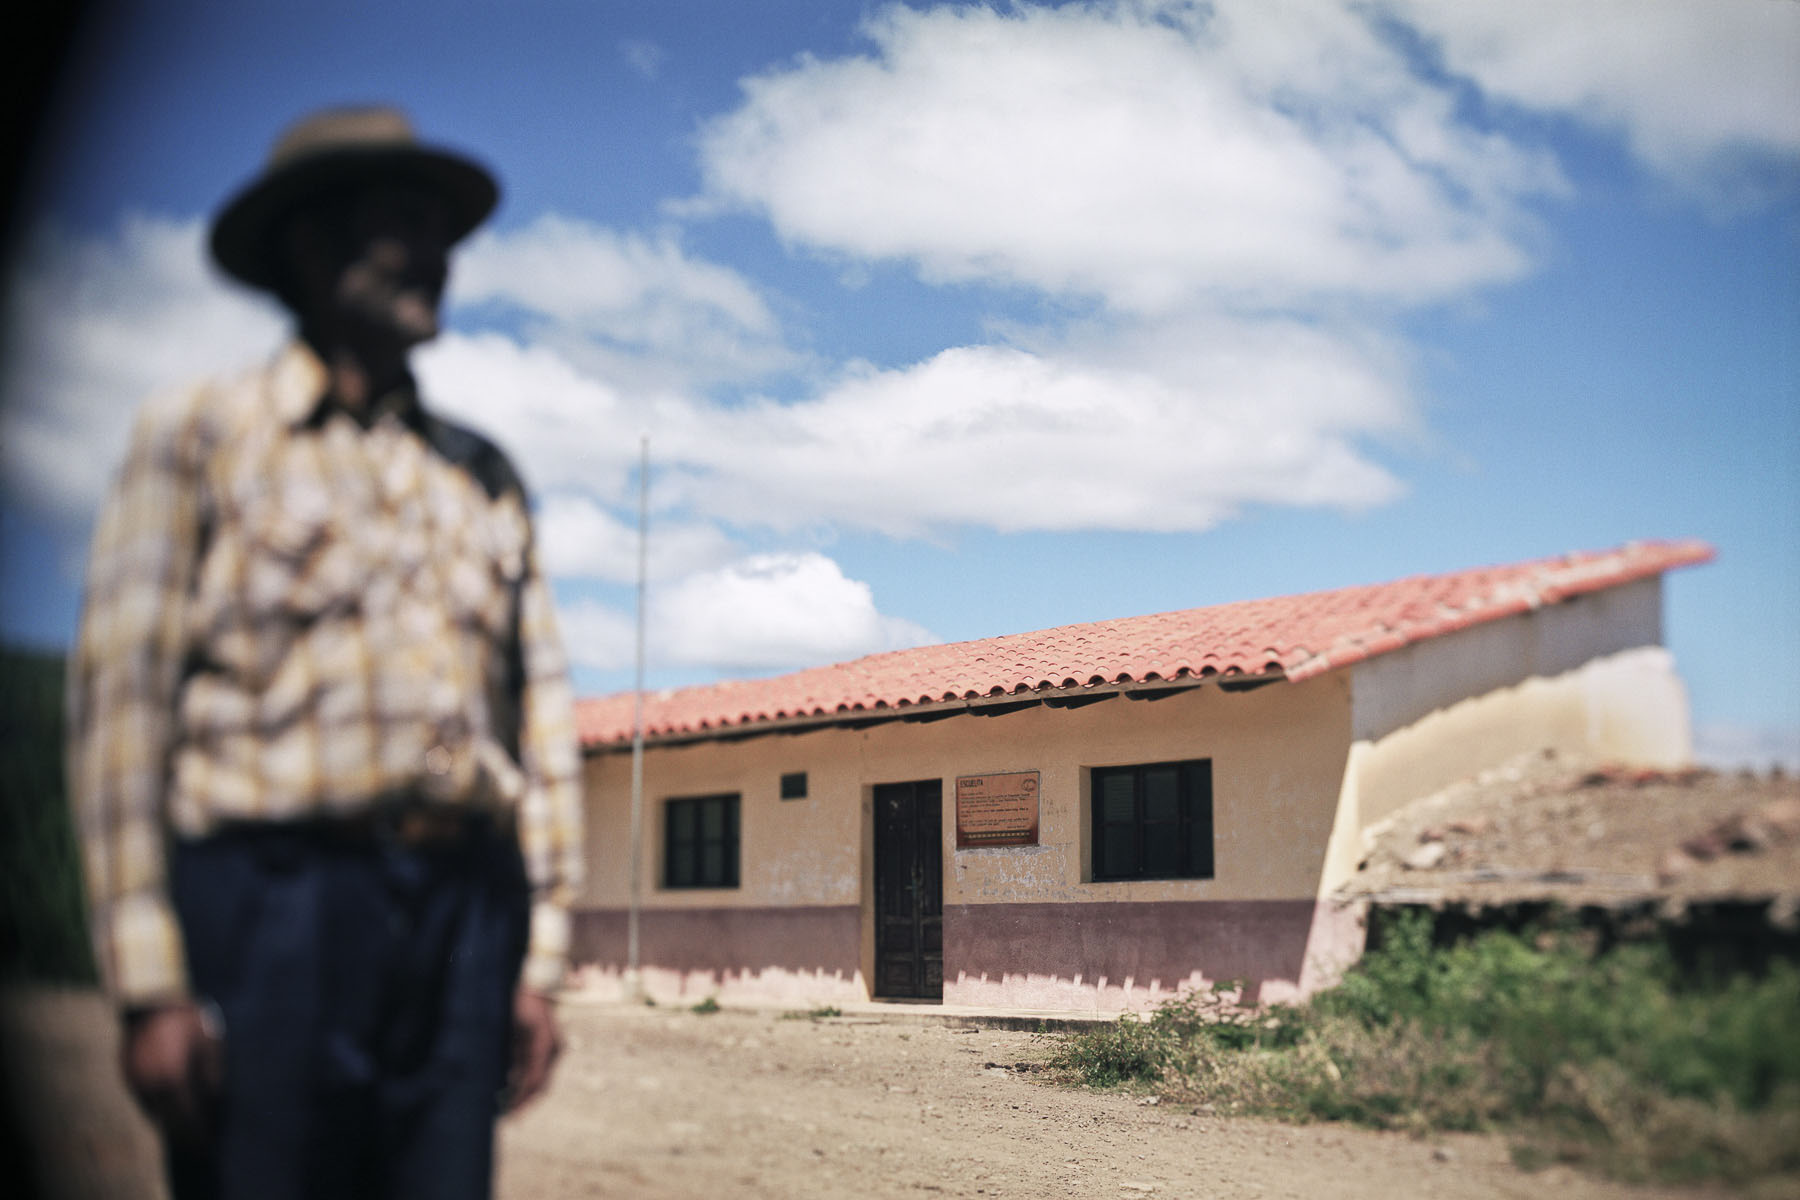 Bolivia, La Higuera. The school where Ernesto «Che» Guevara was executed by the Bolivian army on October 9th, 1967 in April 2005